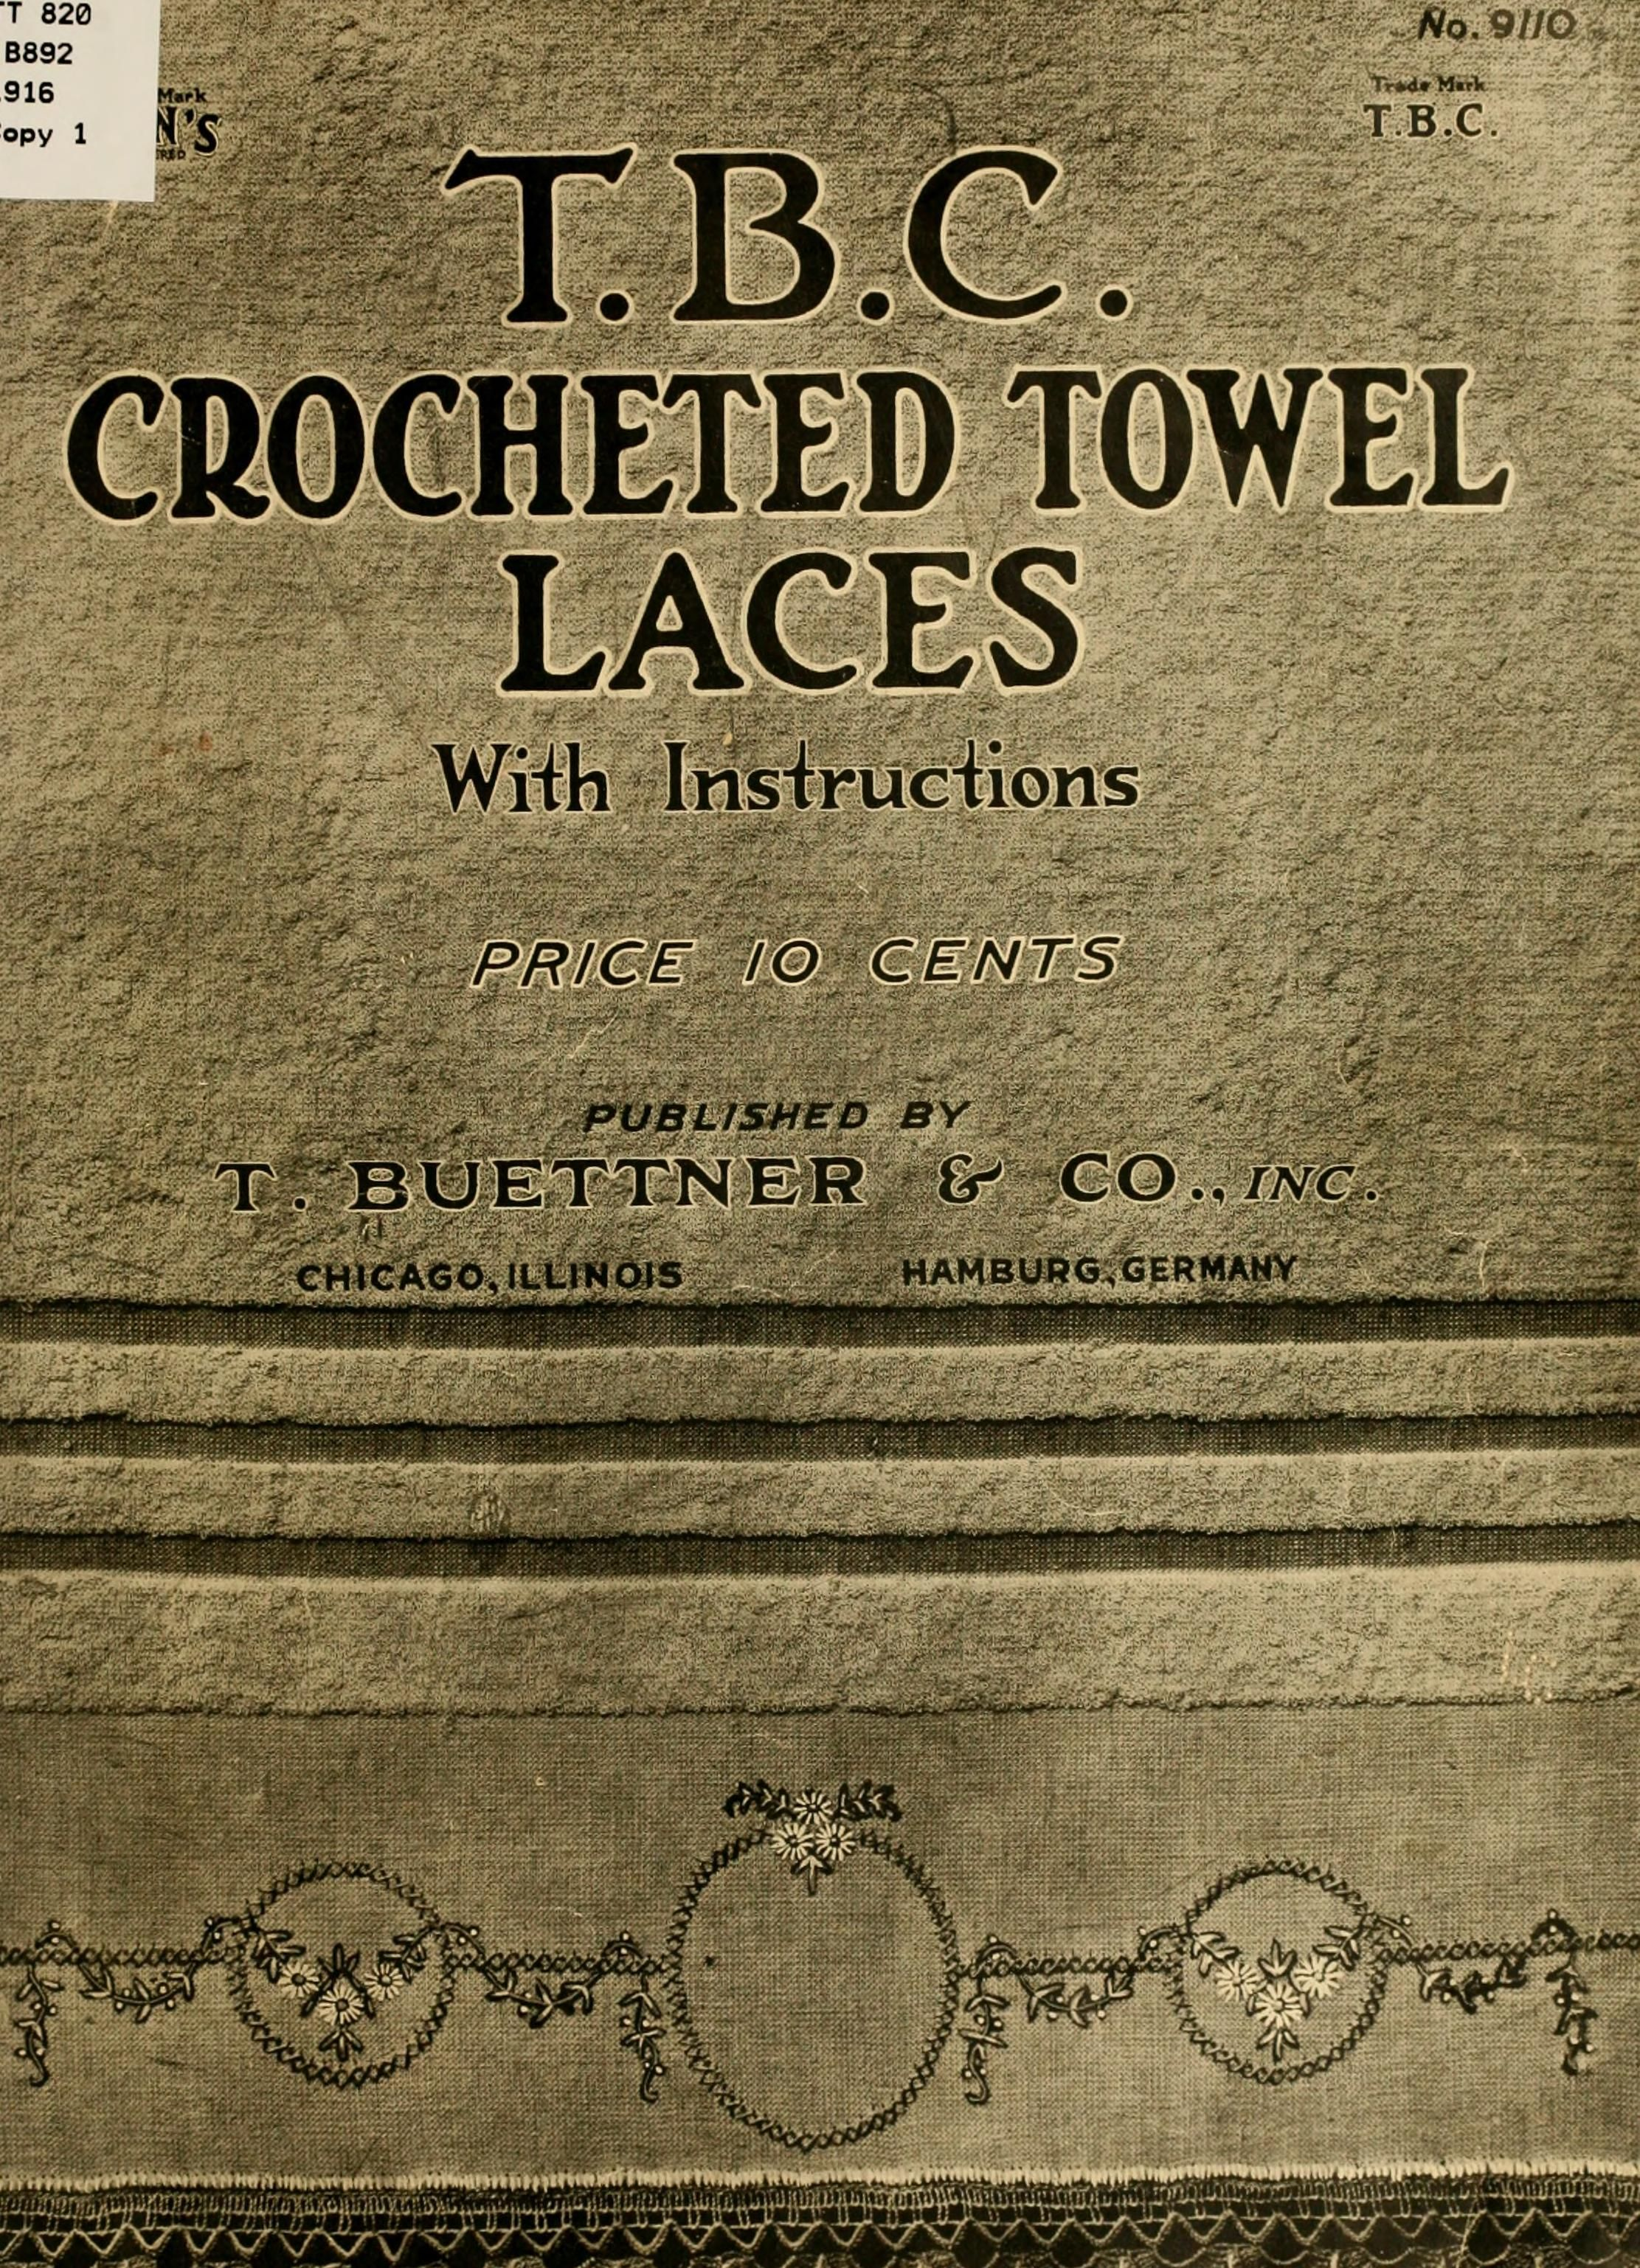 T. B. C. crocheted towel laces with instructions